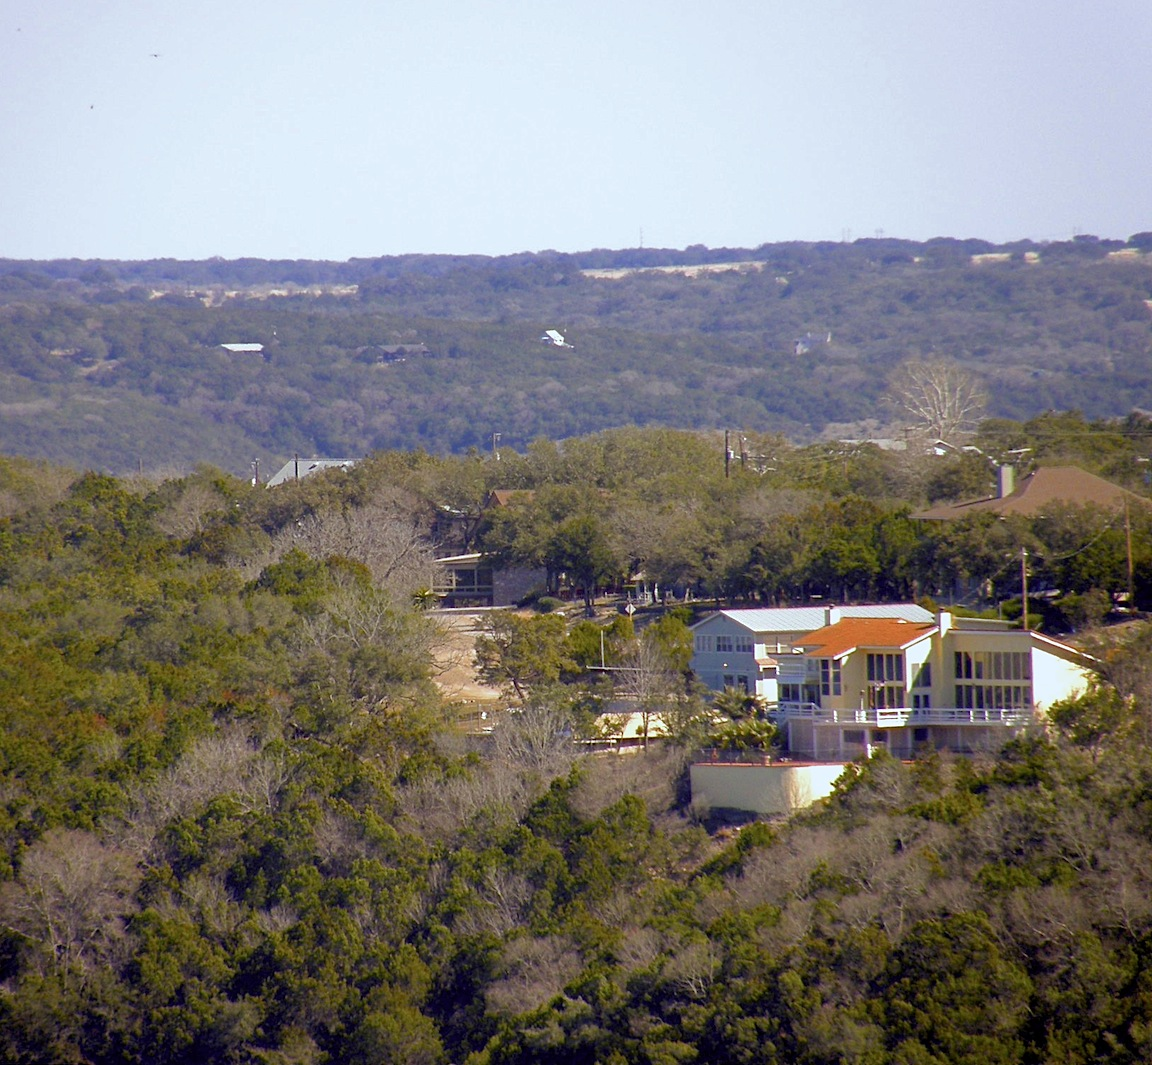 Telephoto lens view of our Clubhouse, taken from atop triple peak